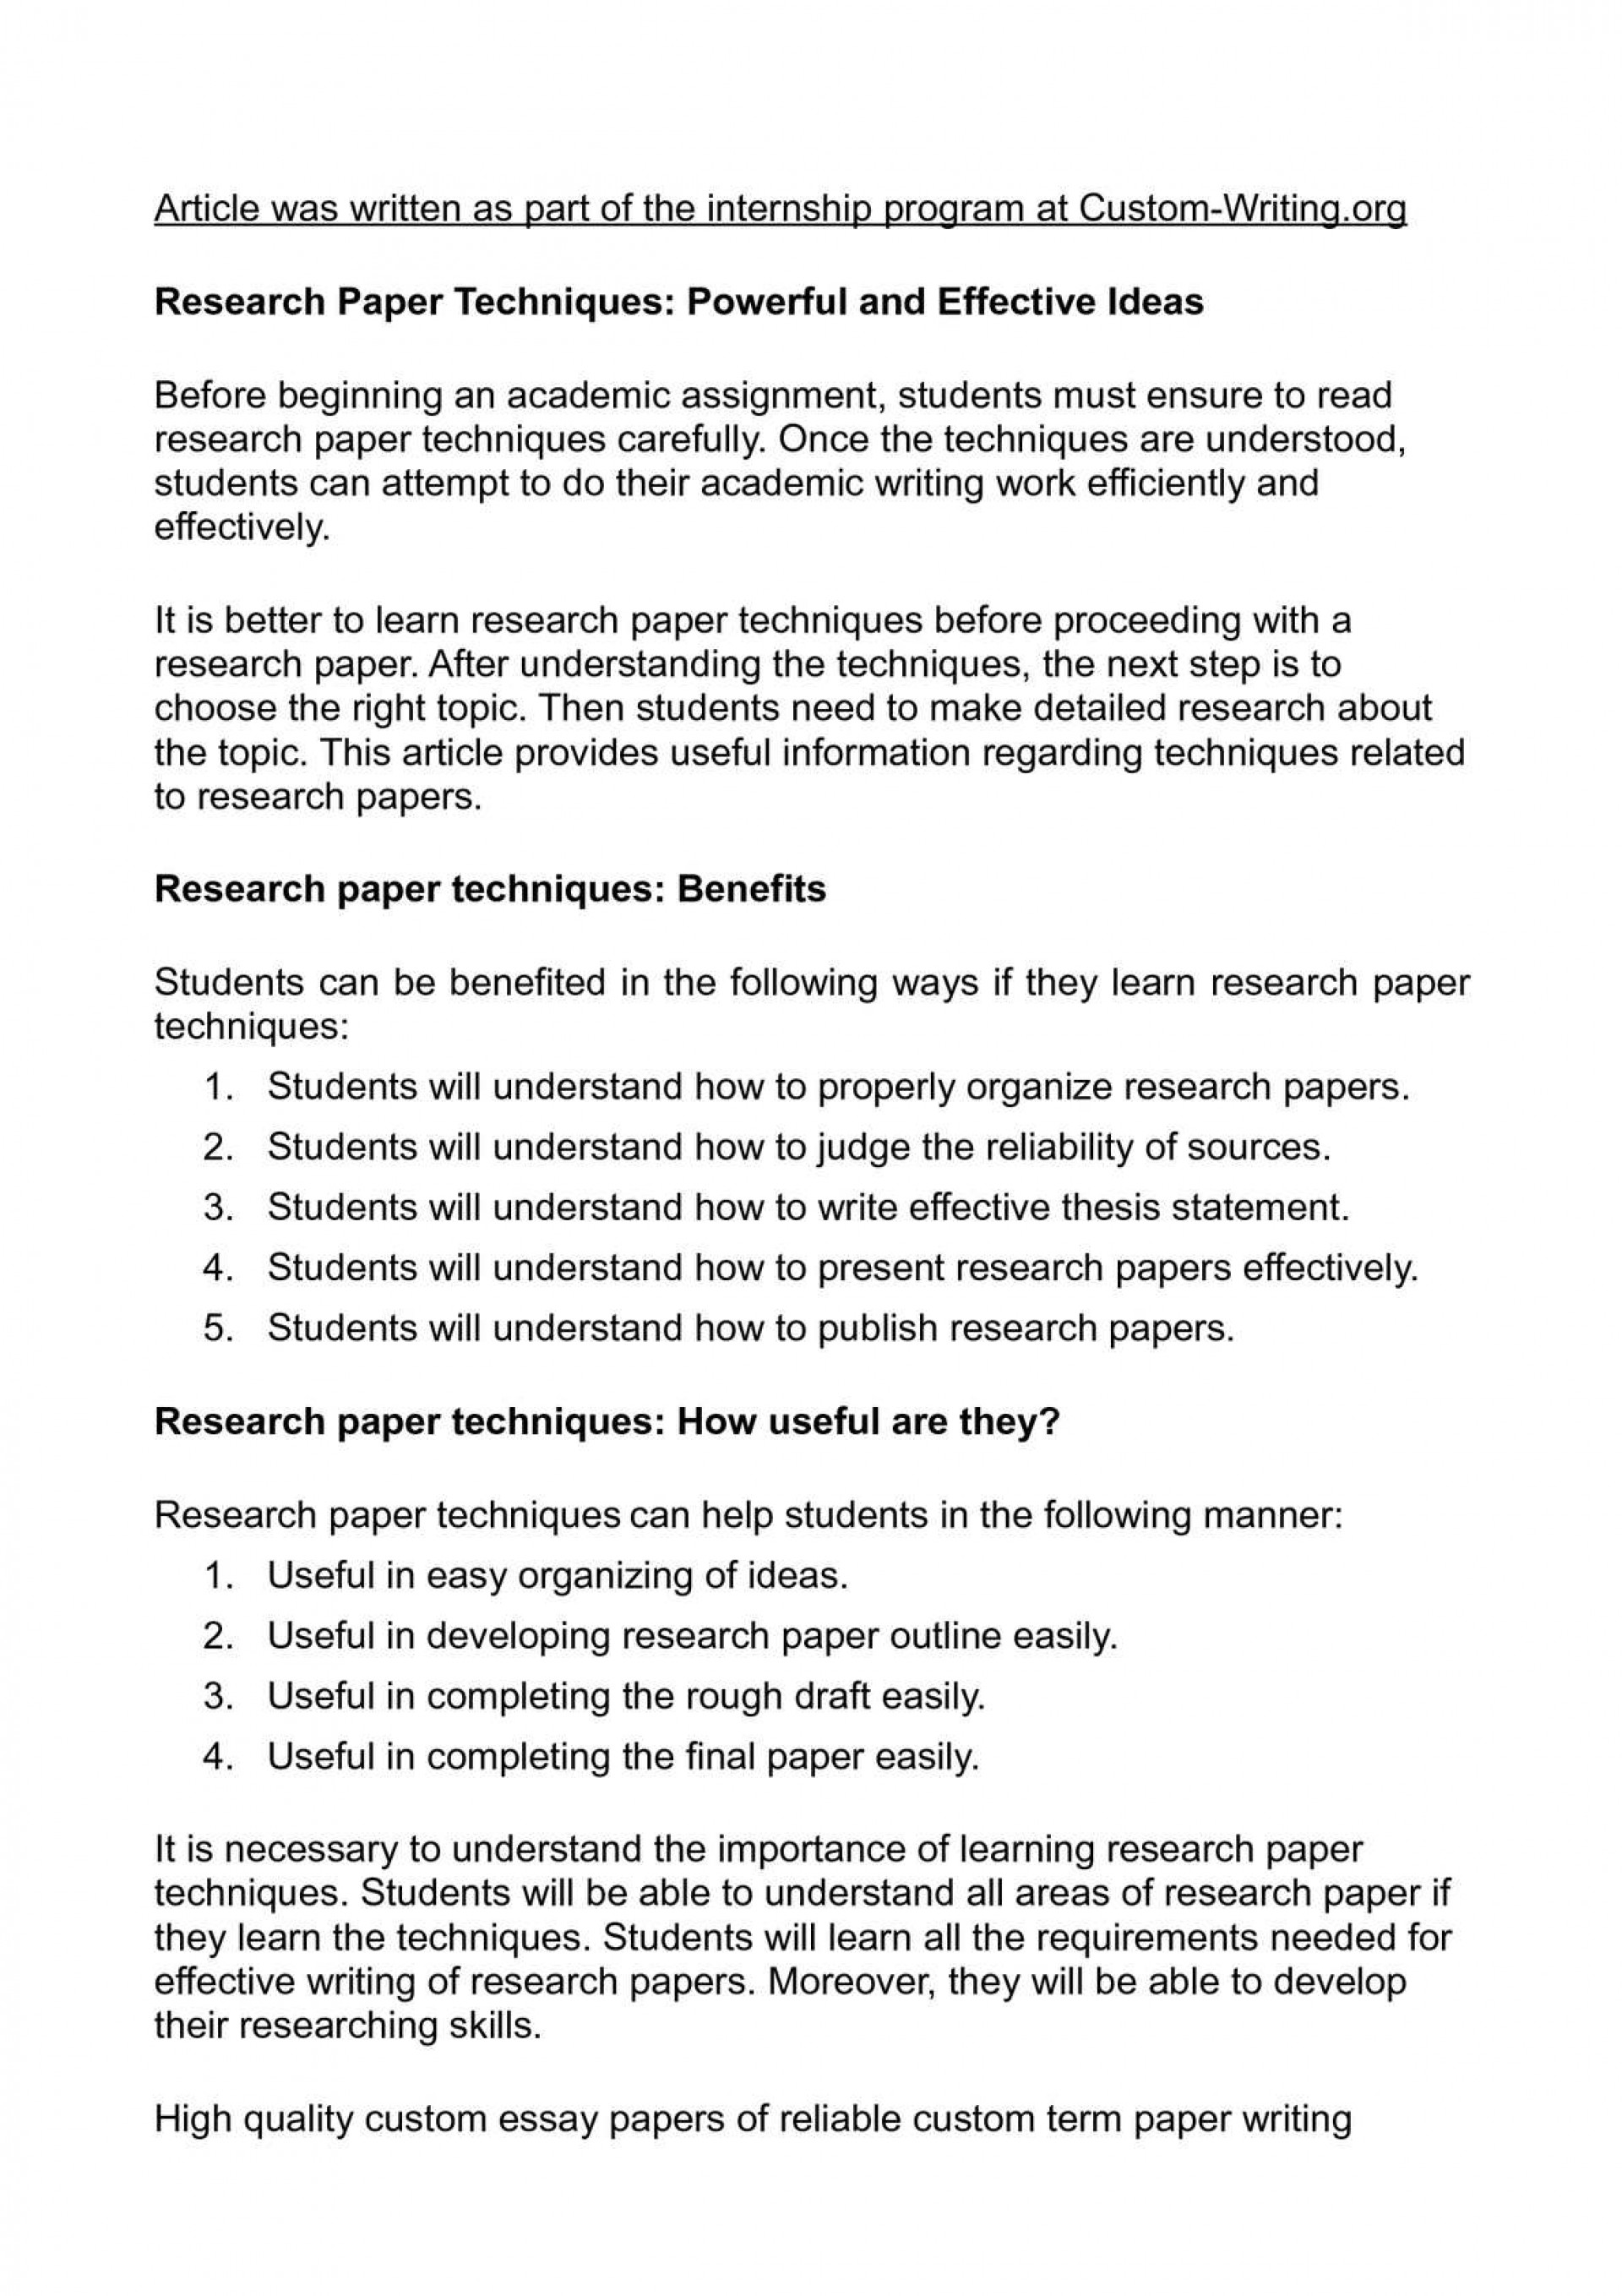 003 Ideas For Researchs P1 Archaicawful Research Papers High School Paper On Technology Healthcare 1920